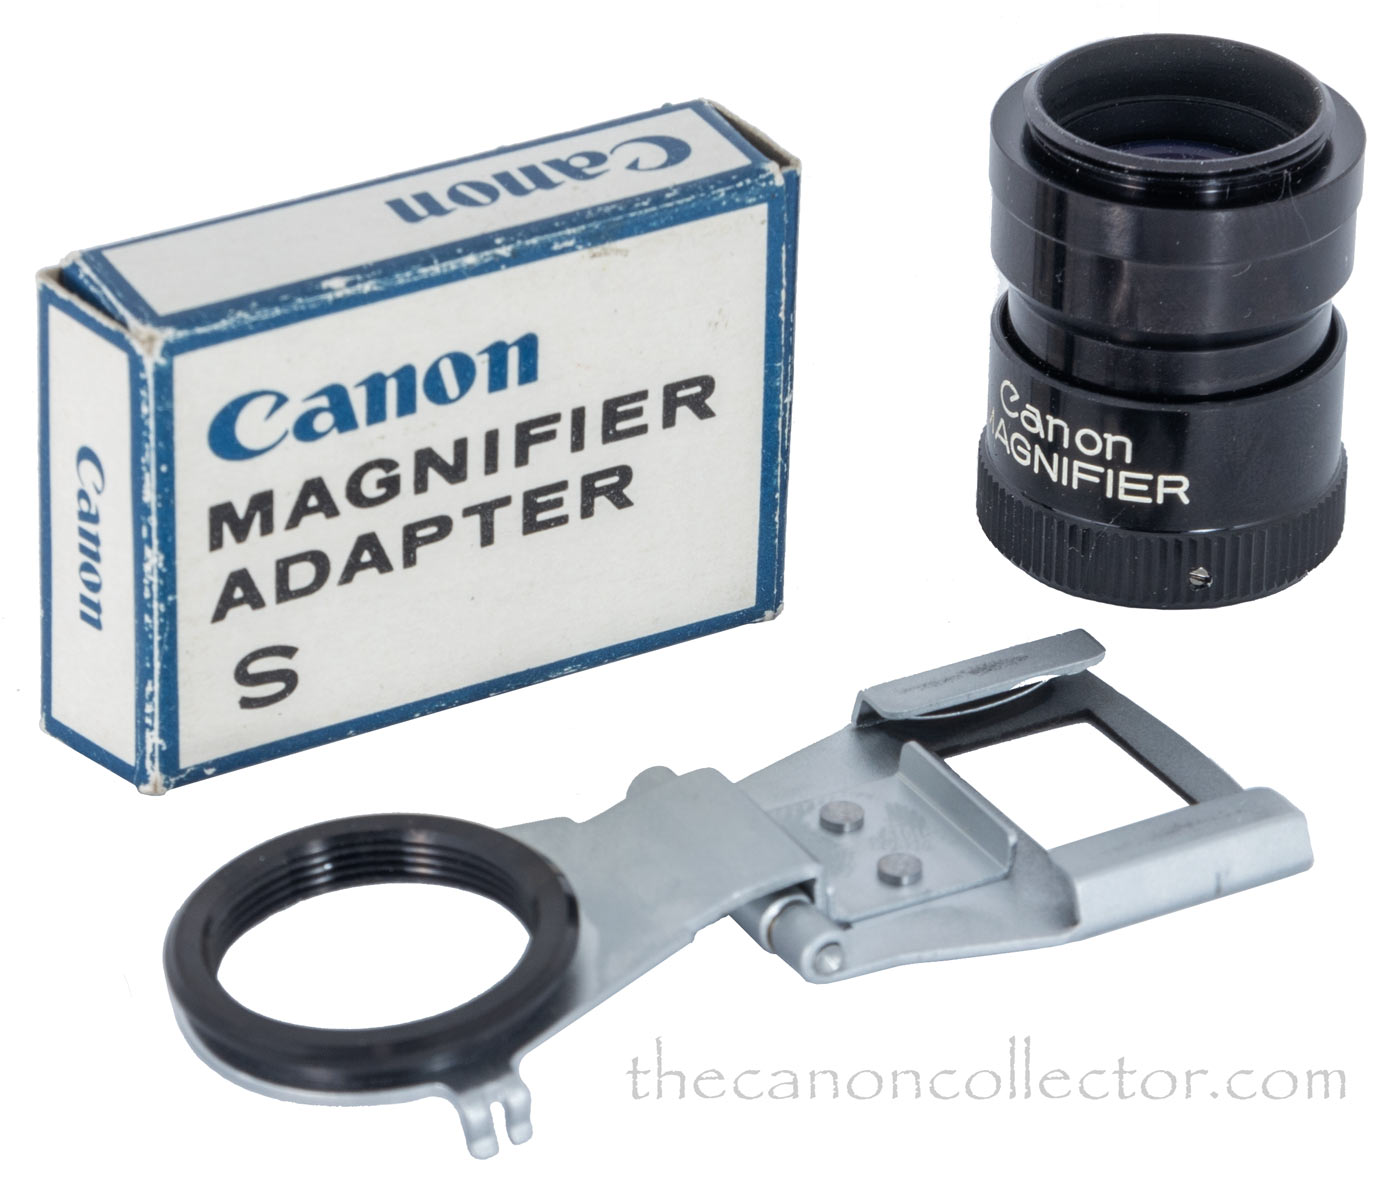 Canon Magnifier Adapter S